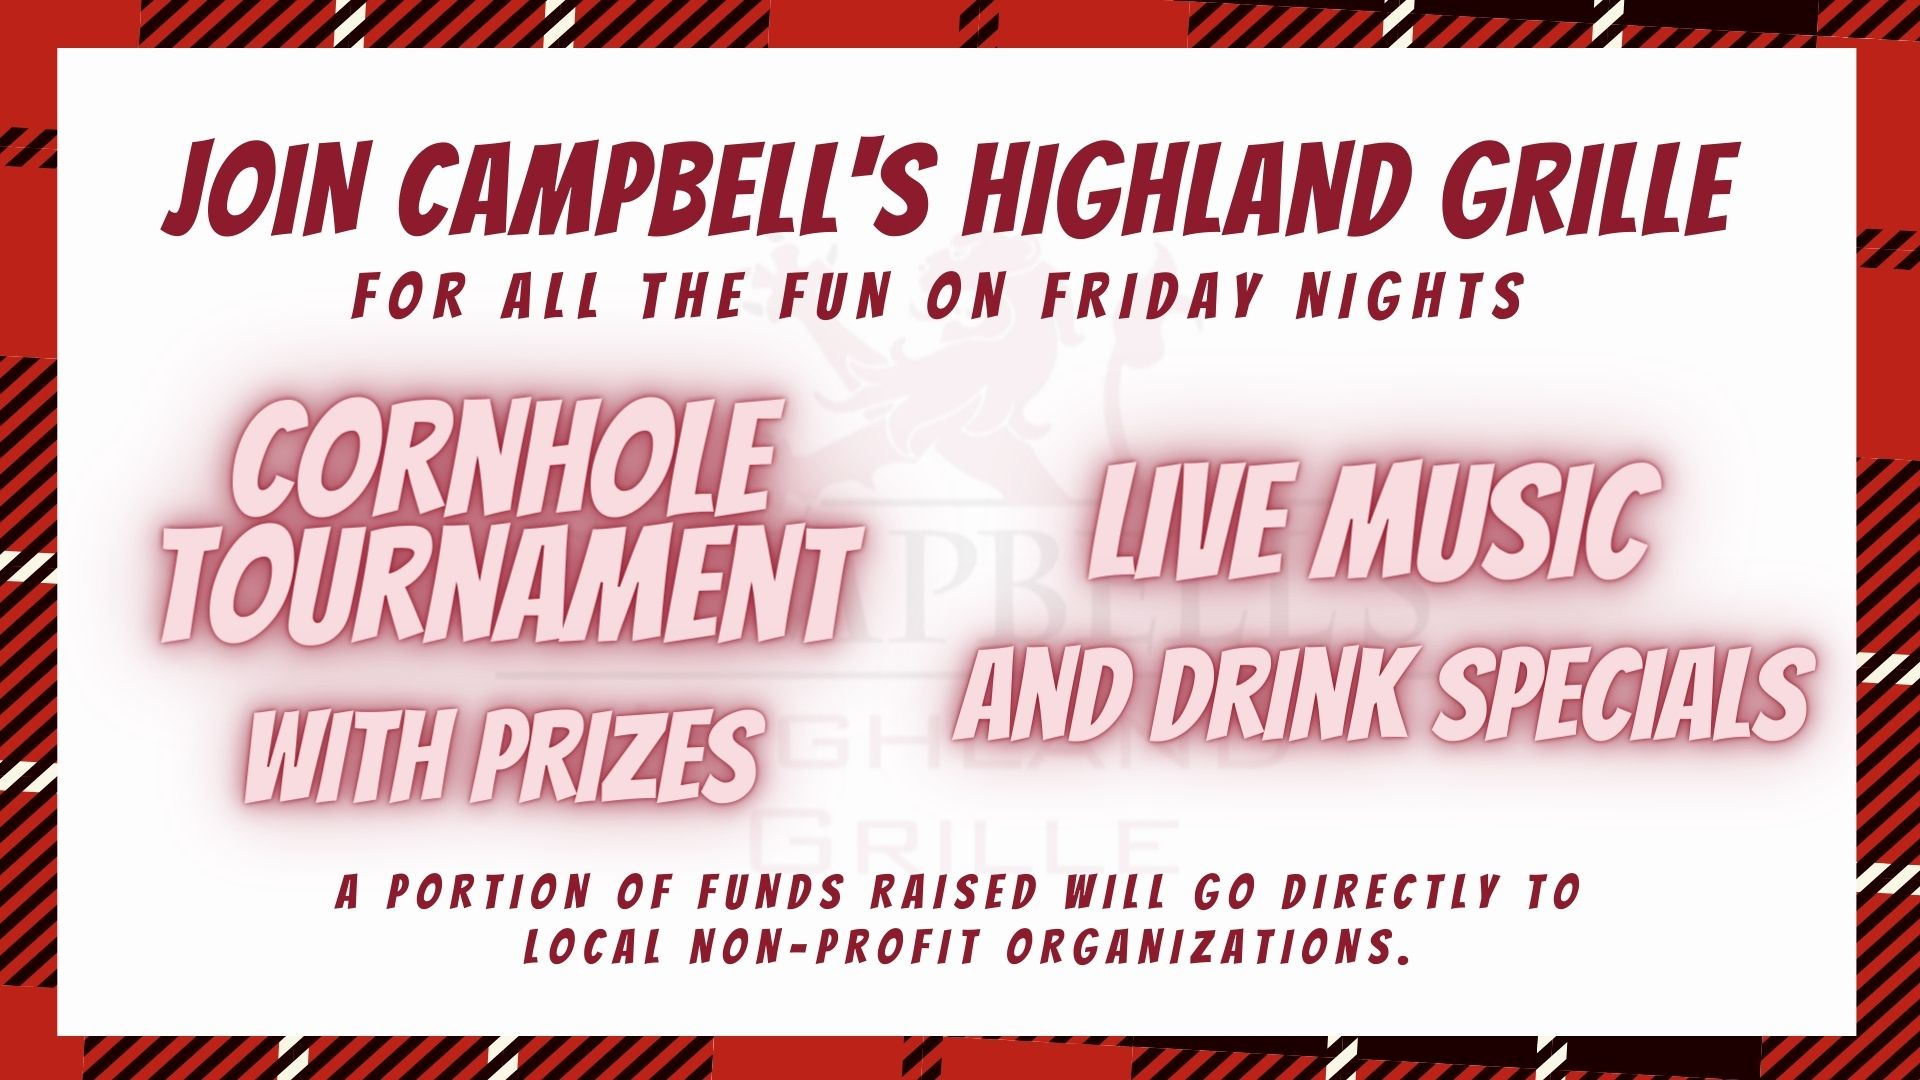 Cornhole and Live Music to Support Charity